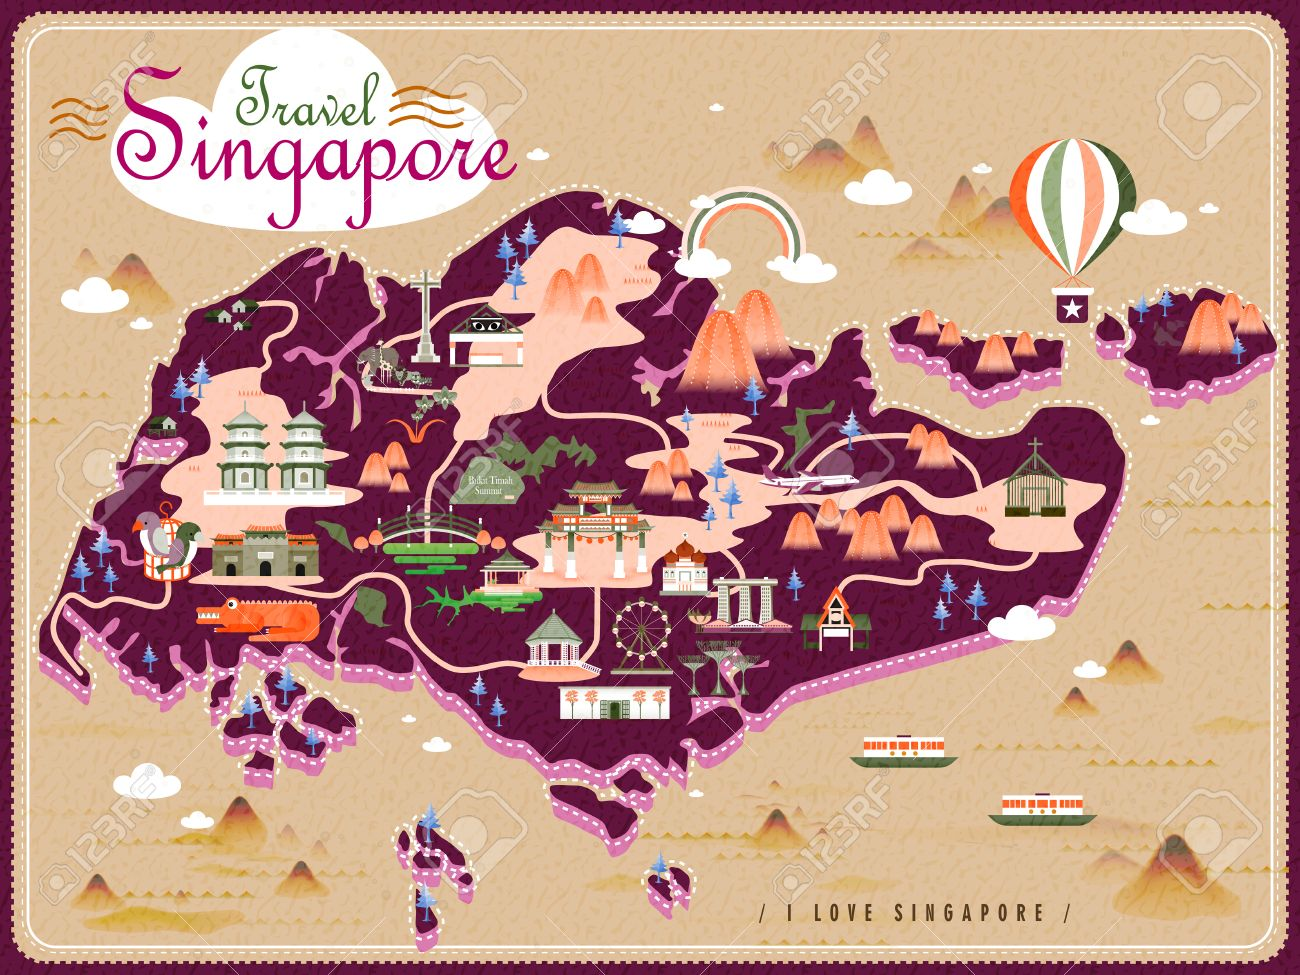 Singapore Travel Map With Lovely Attractions In Flat Design – Singapore Tourist Attractions Map